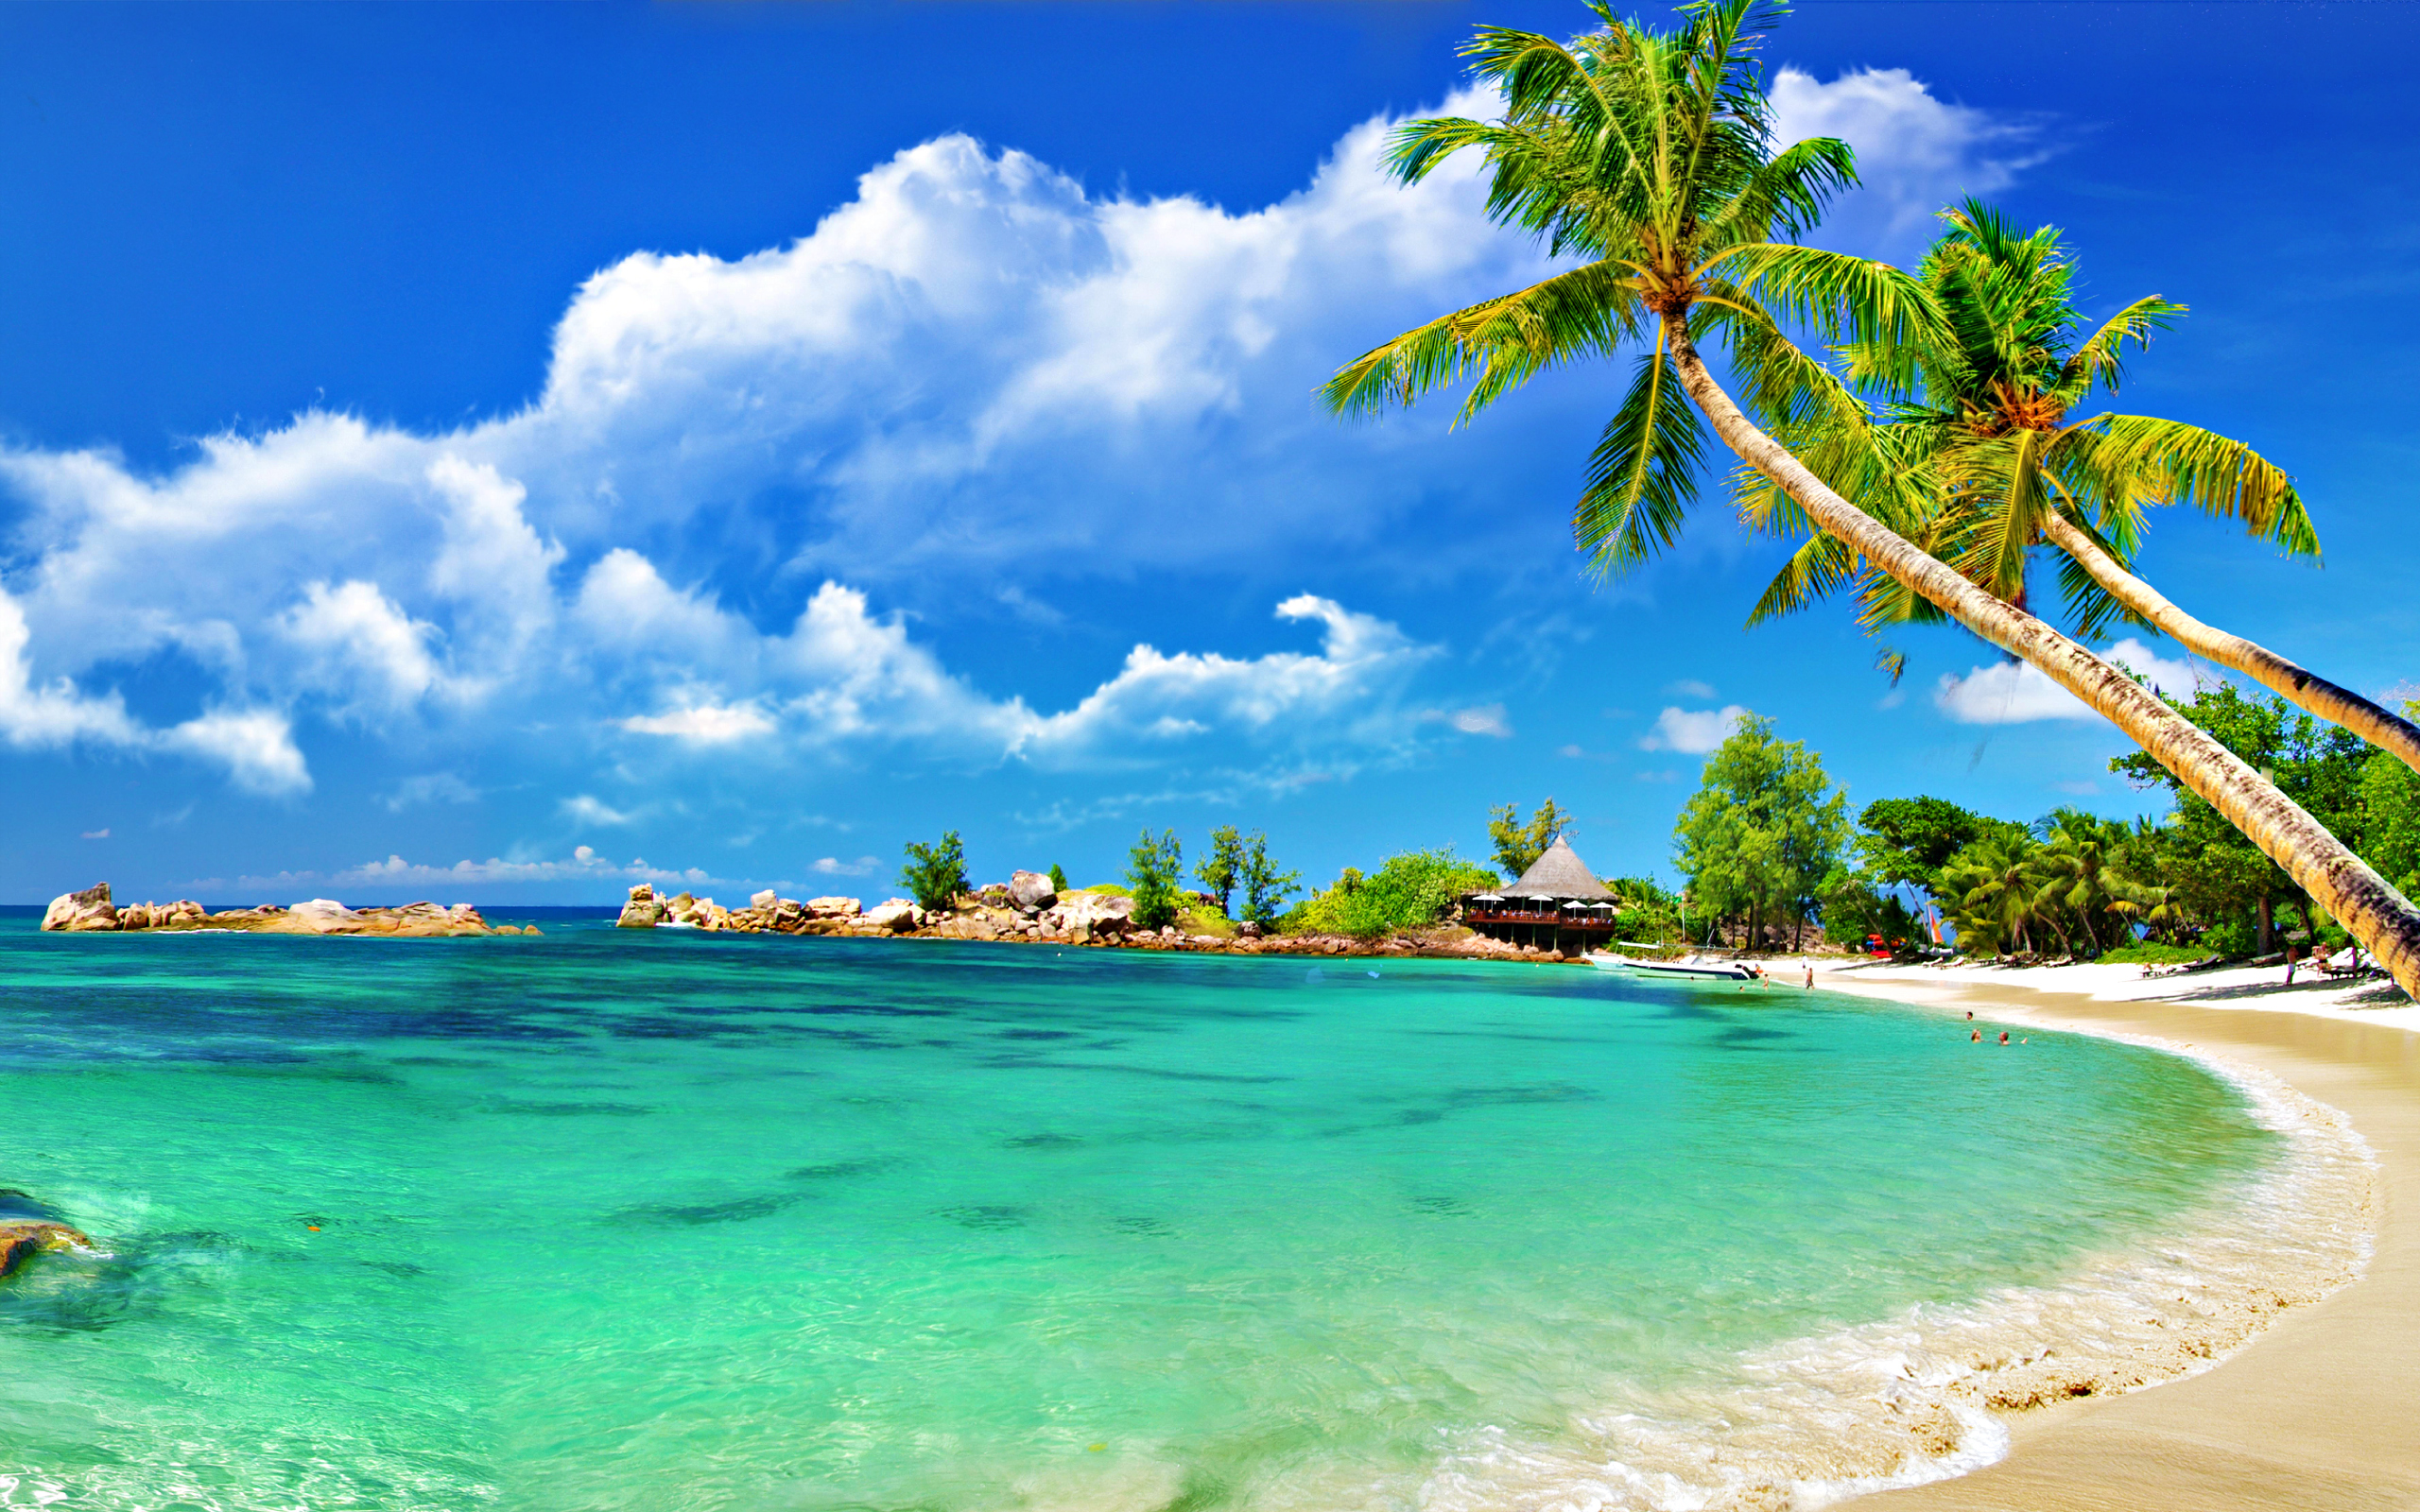 Tropical Palm Beach Wallpaper 2560x1600  ImageBank.biz